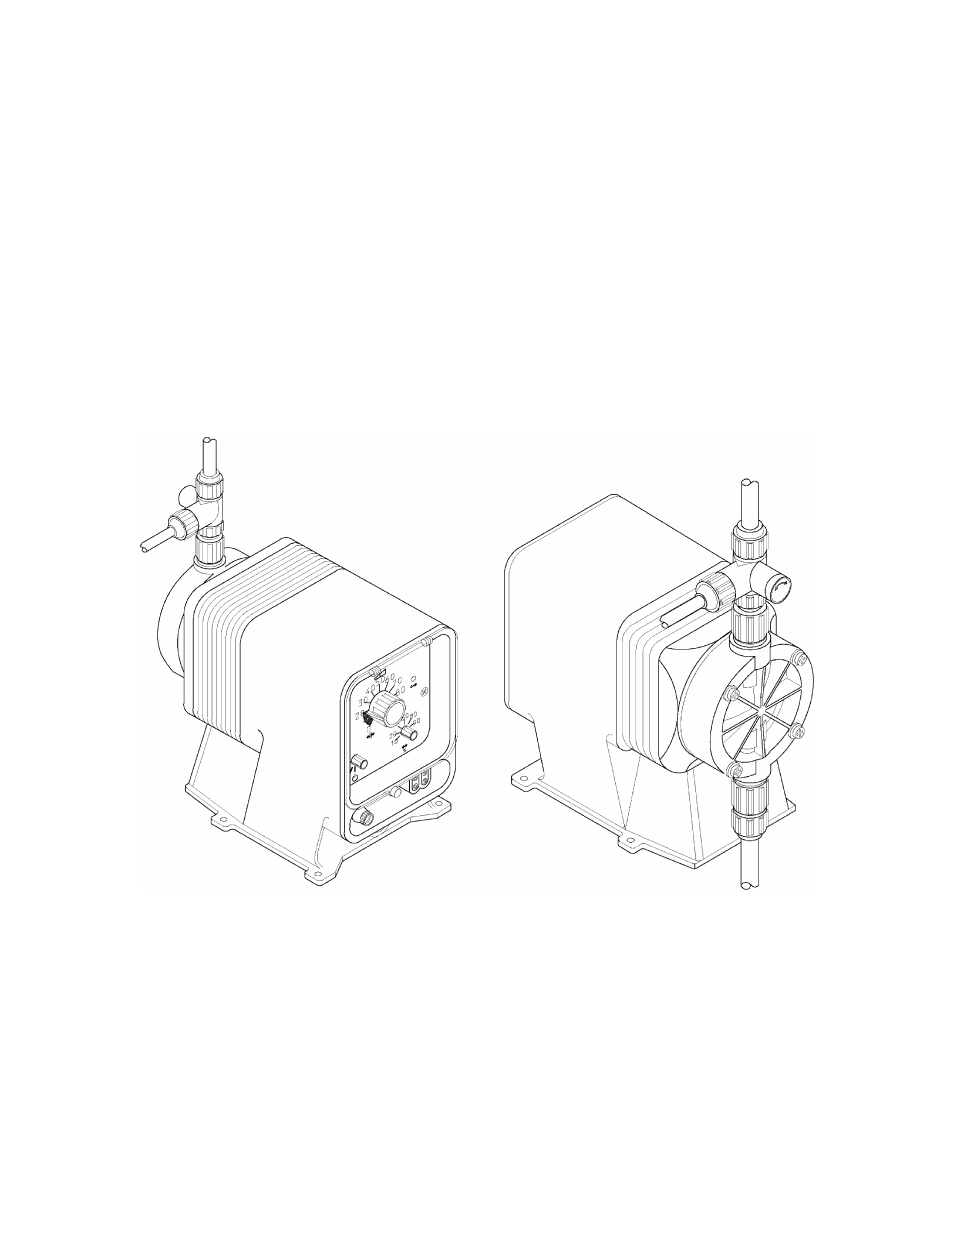 Pulsafeeder PULSAtron Series HV EN User Manual | 16 pages